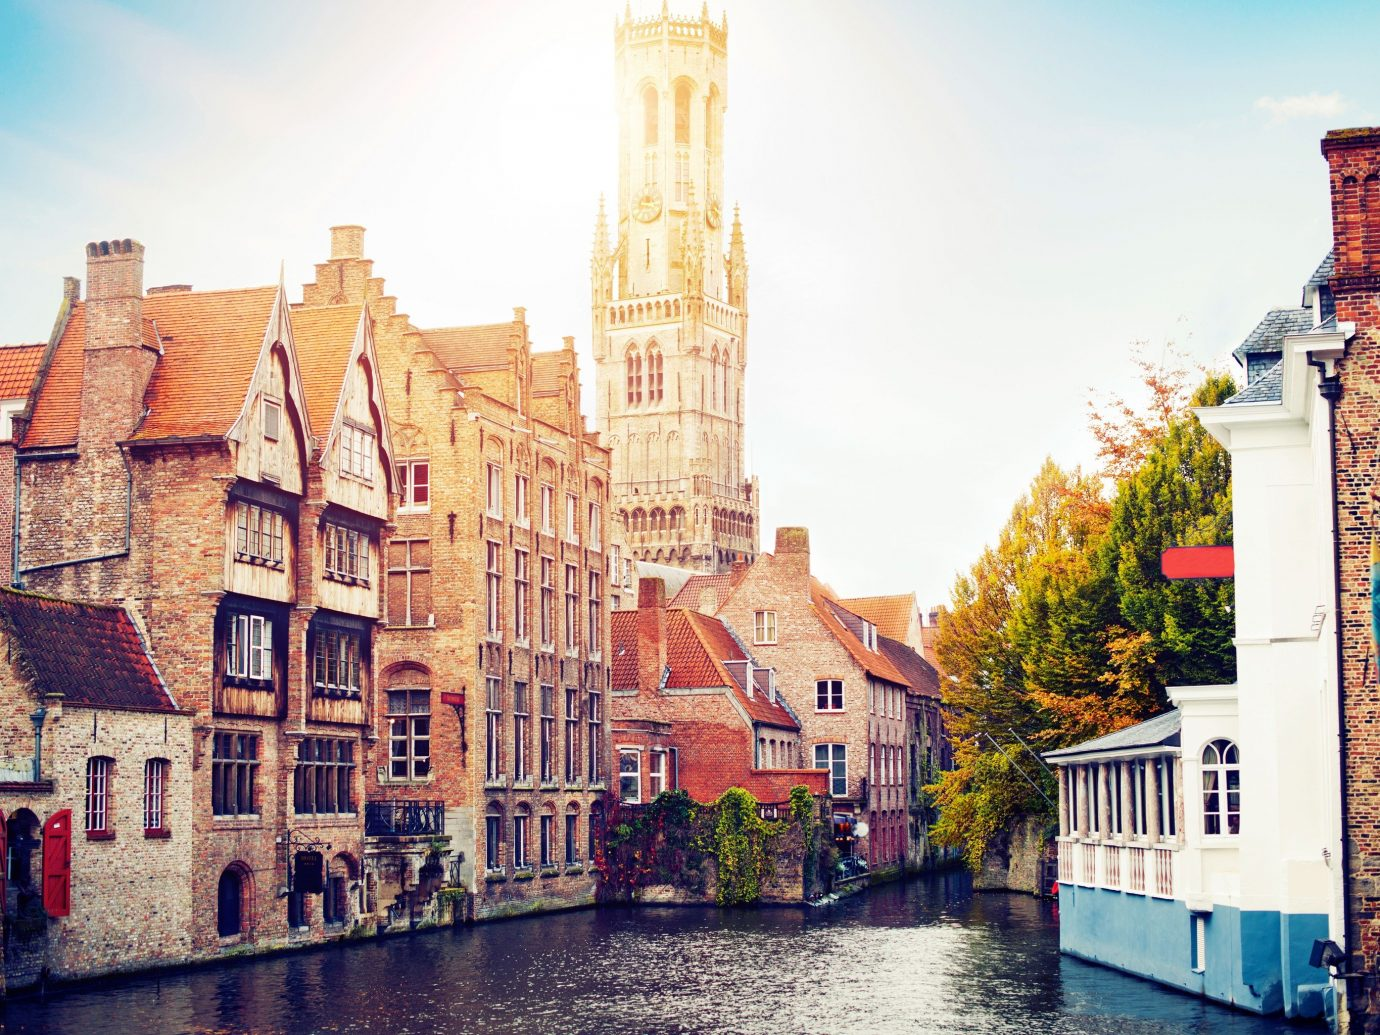 View of Bruges from a canal.